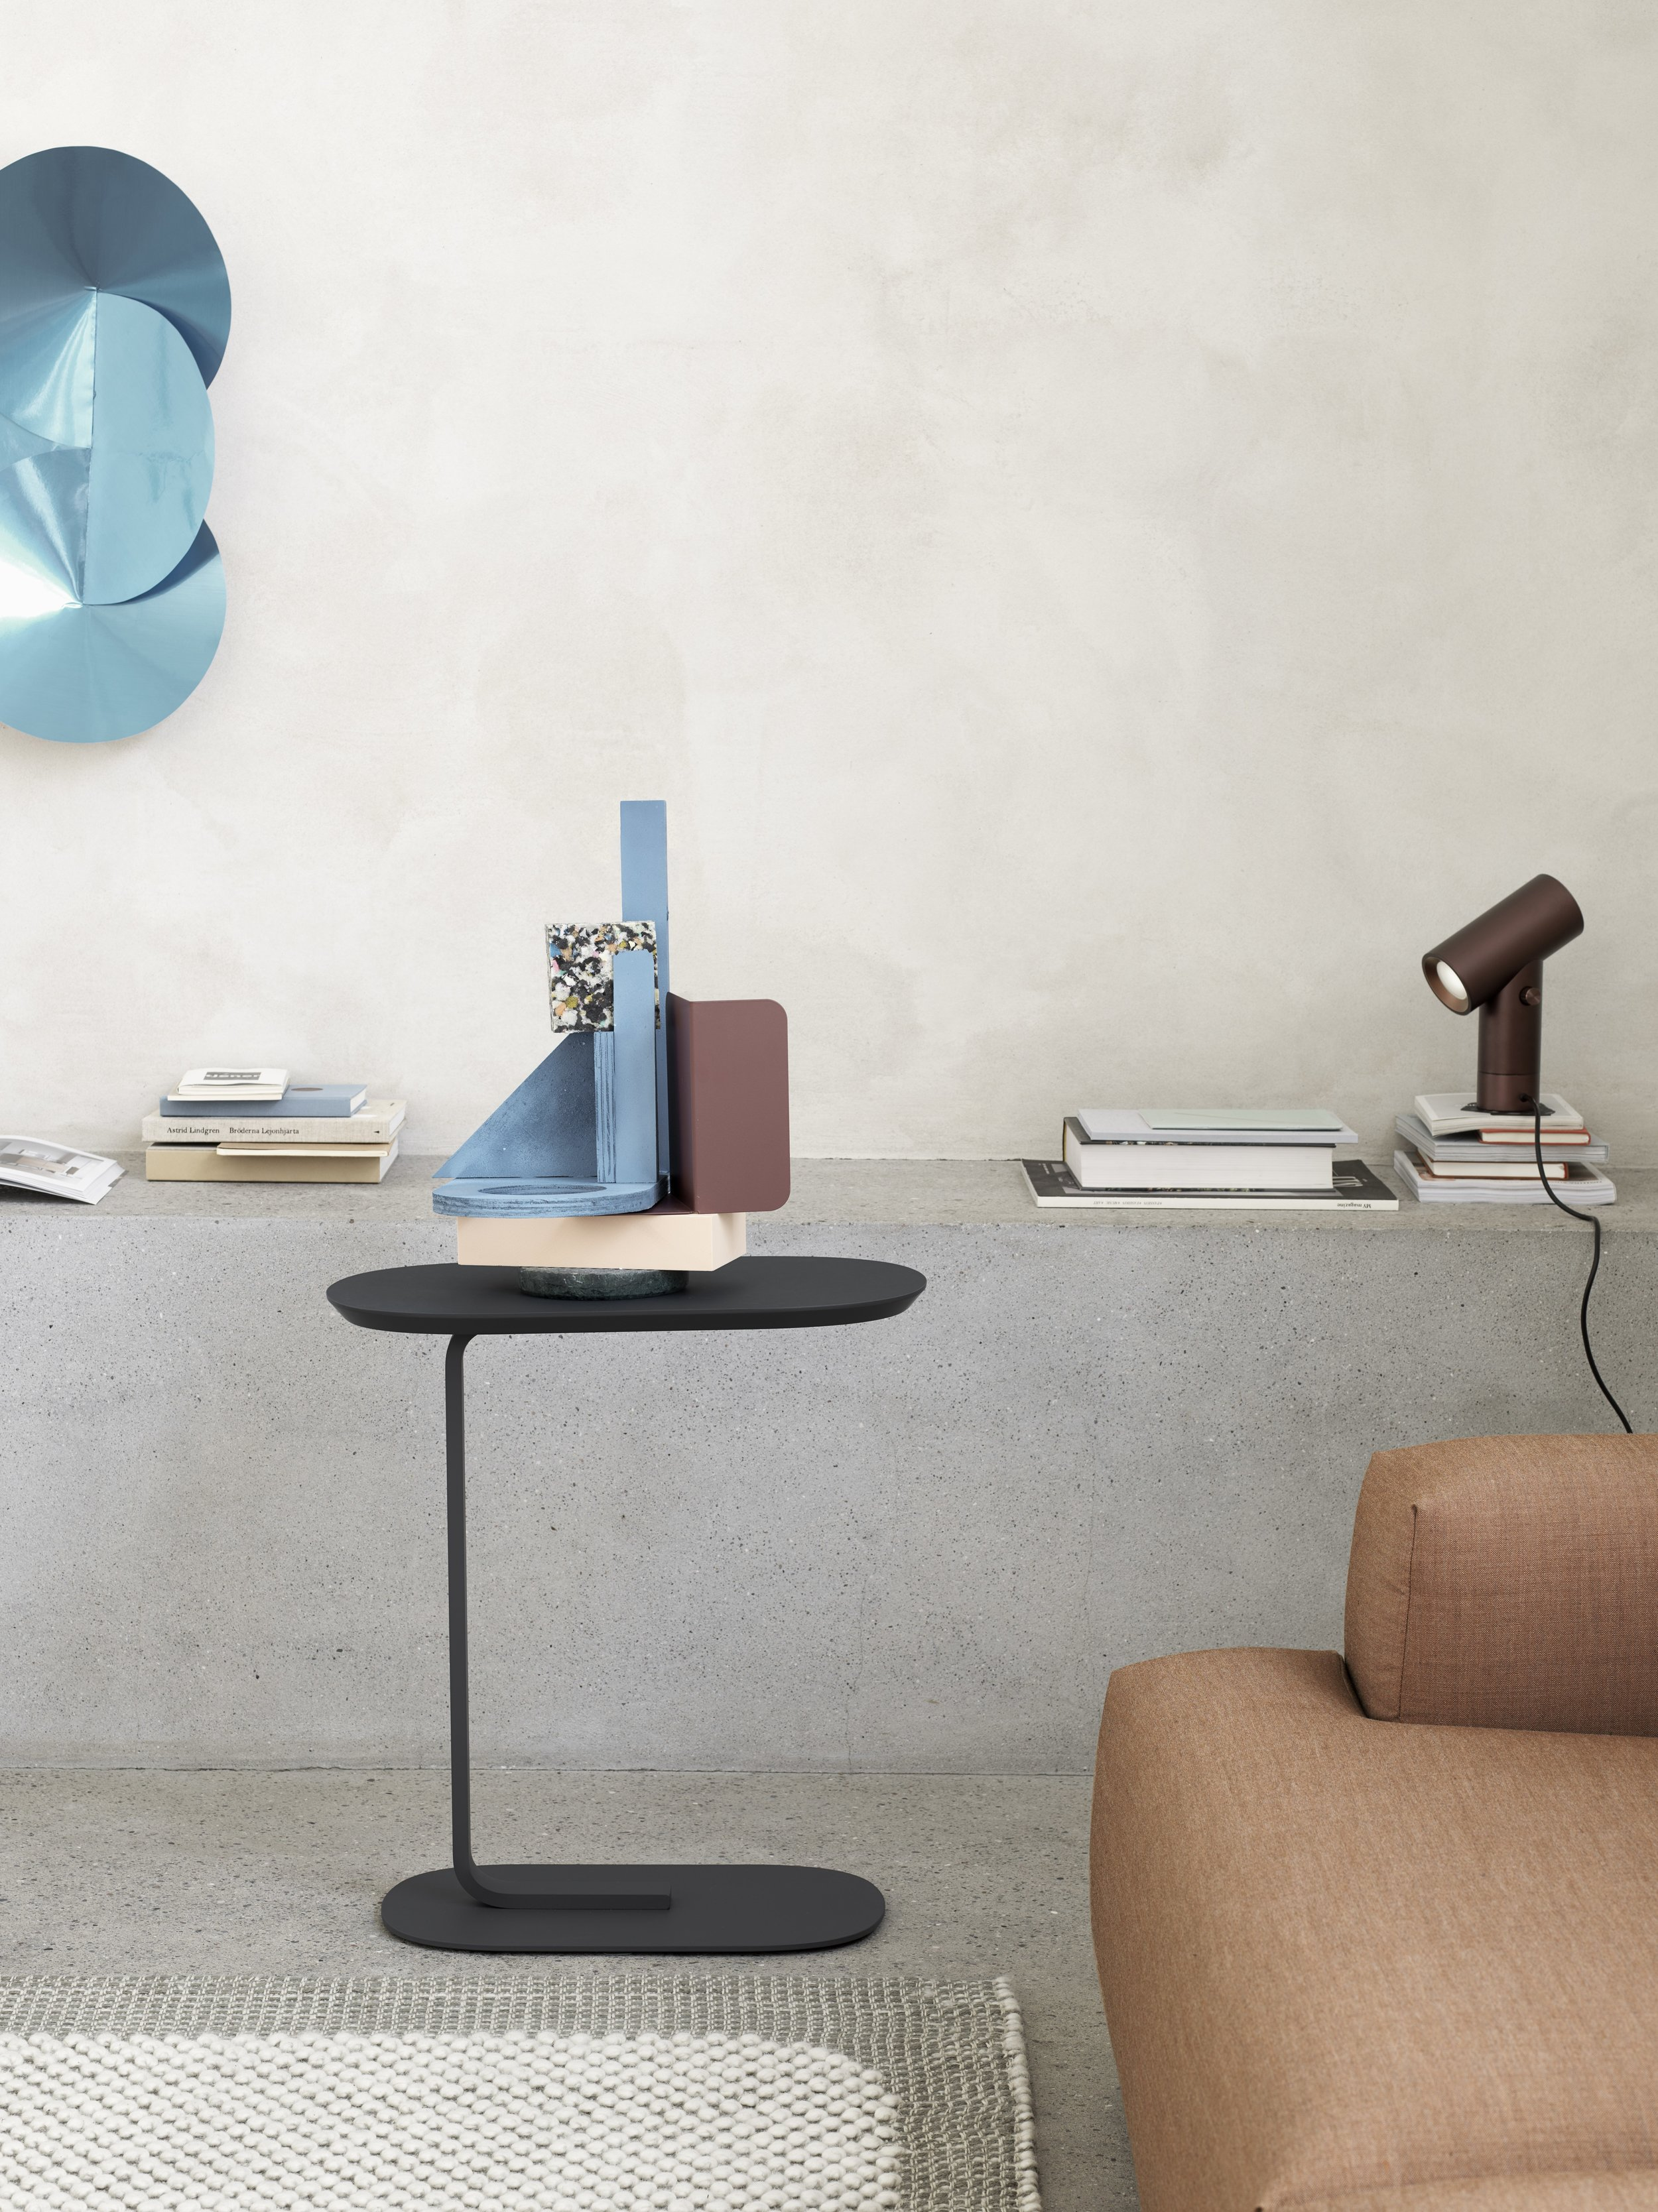 Relate-sidetable-black-pebble-light-grey-connect-remix-252-beam-compile-bookend-Muuto-org.jpg